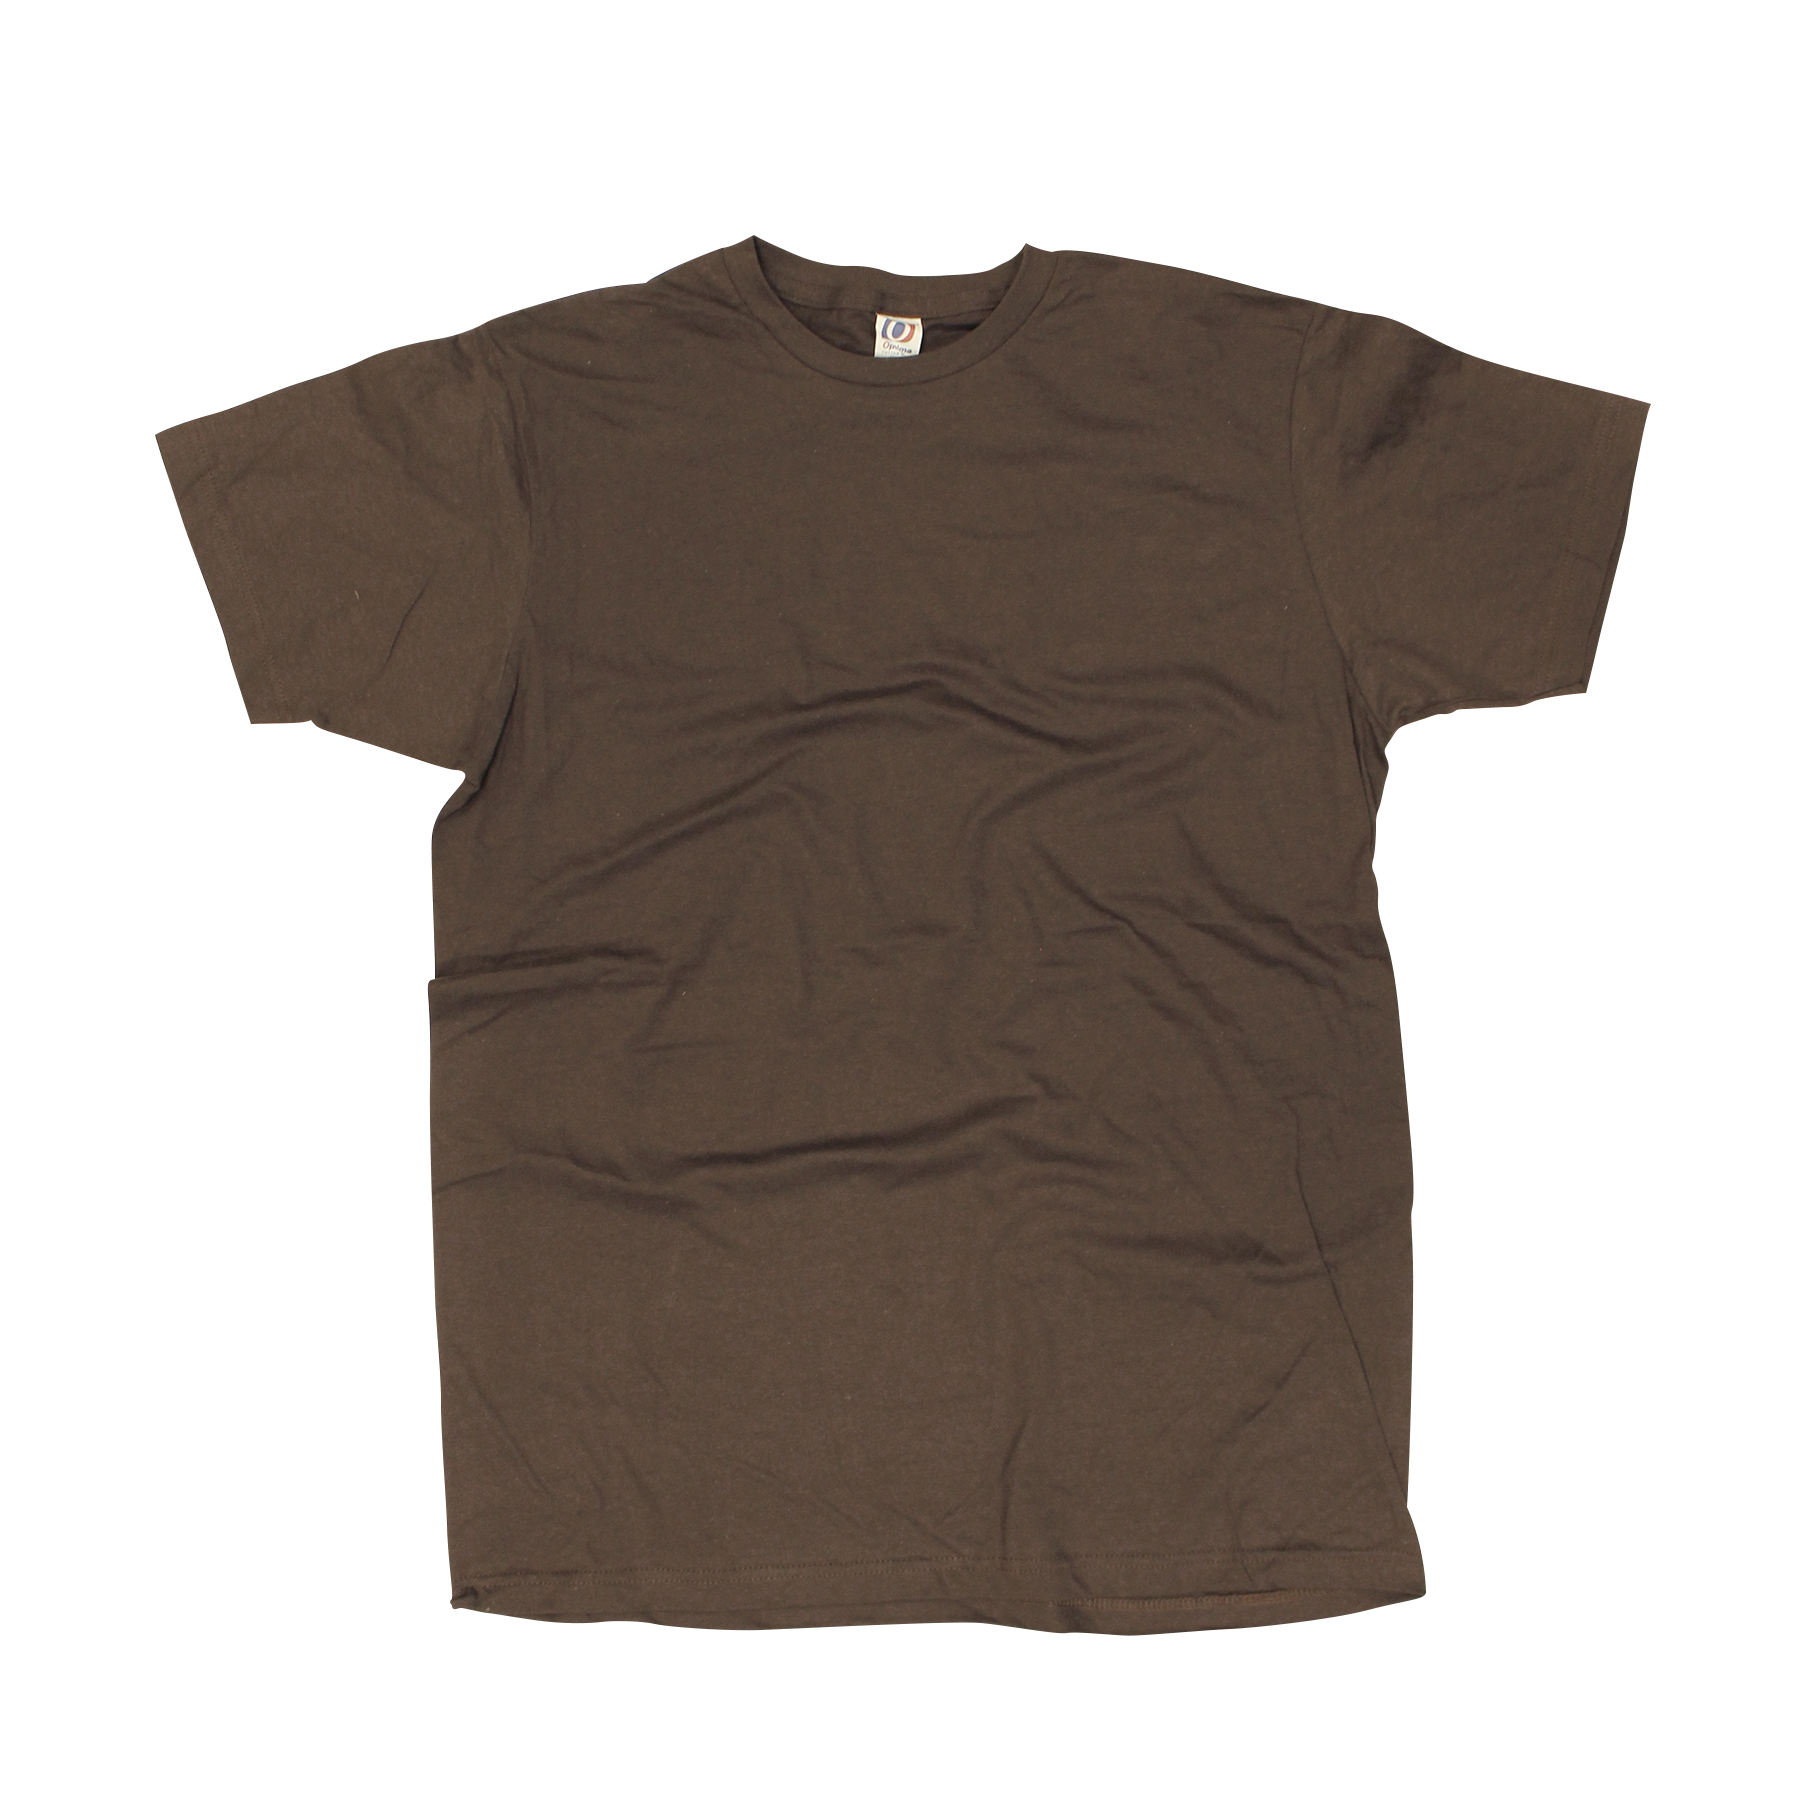 Optima Brown - Large - Men's Clearance